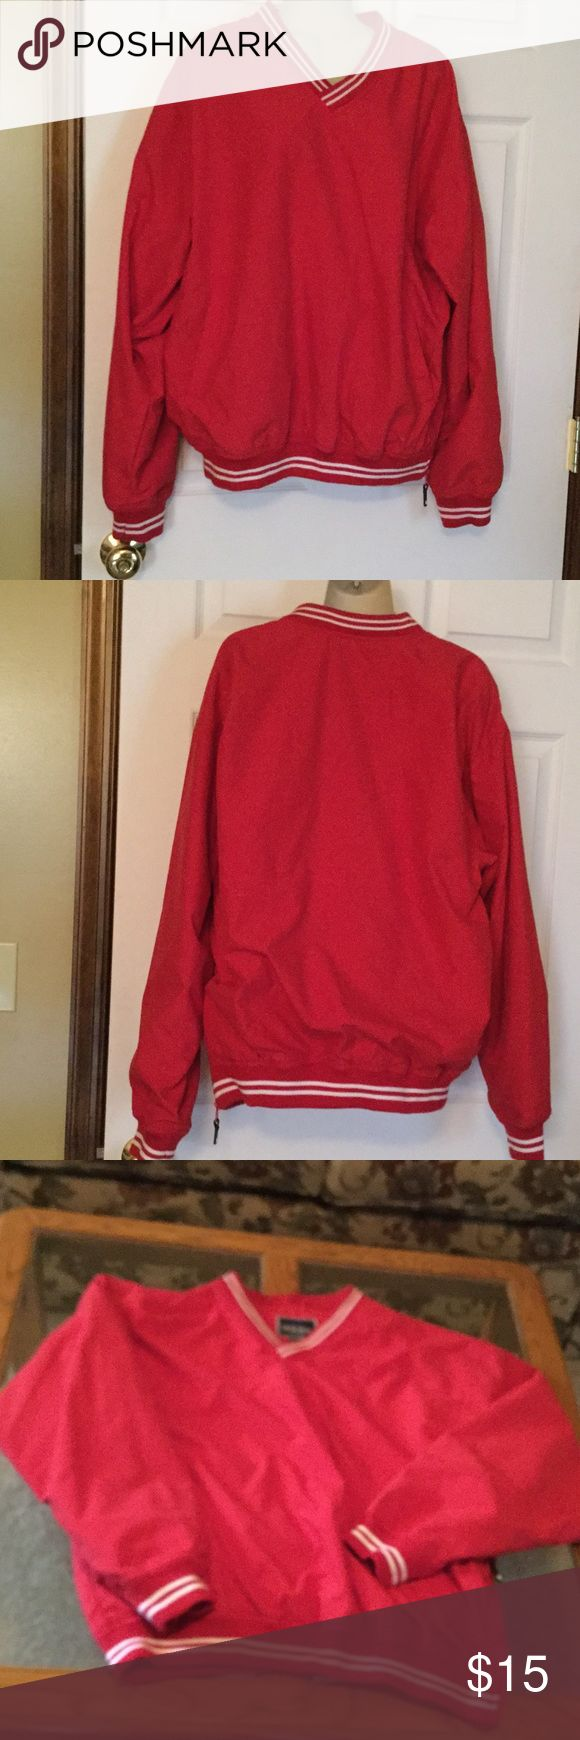 Holloway Men's Lg. Red Windbreaker Top. NWOT 100% polyester shell & Body.  Sleeve lining is 100% nylon. Small v neck with acrylic around neck and arms.  2 pockets in front and a side zipper.  Wind breaker type top has a mesh type lining.  Never worn.  NWOT Holloway Jackets & Coats Windbreakers